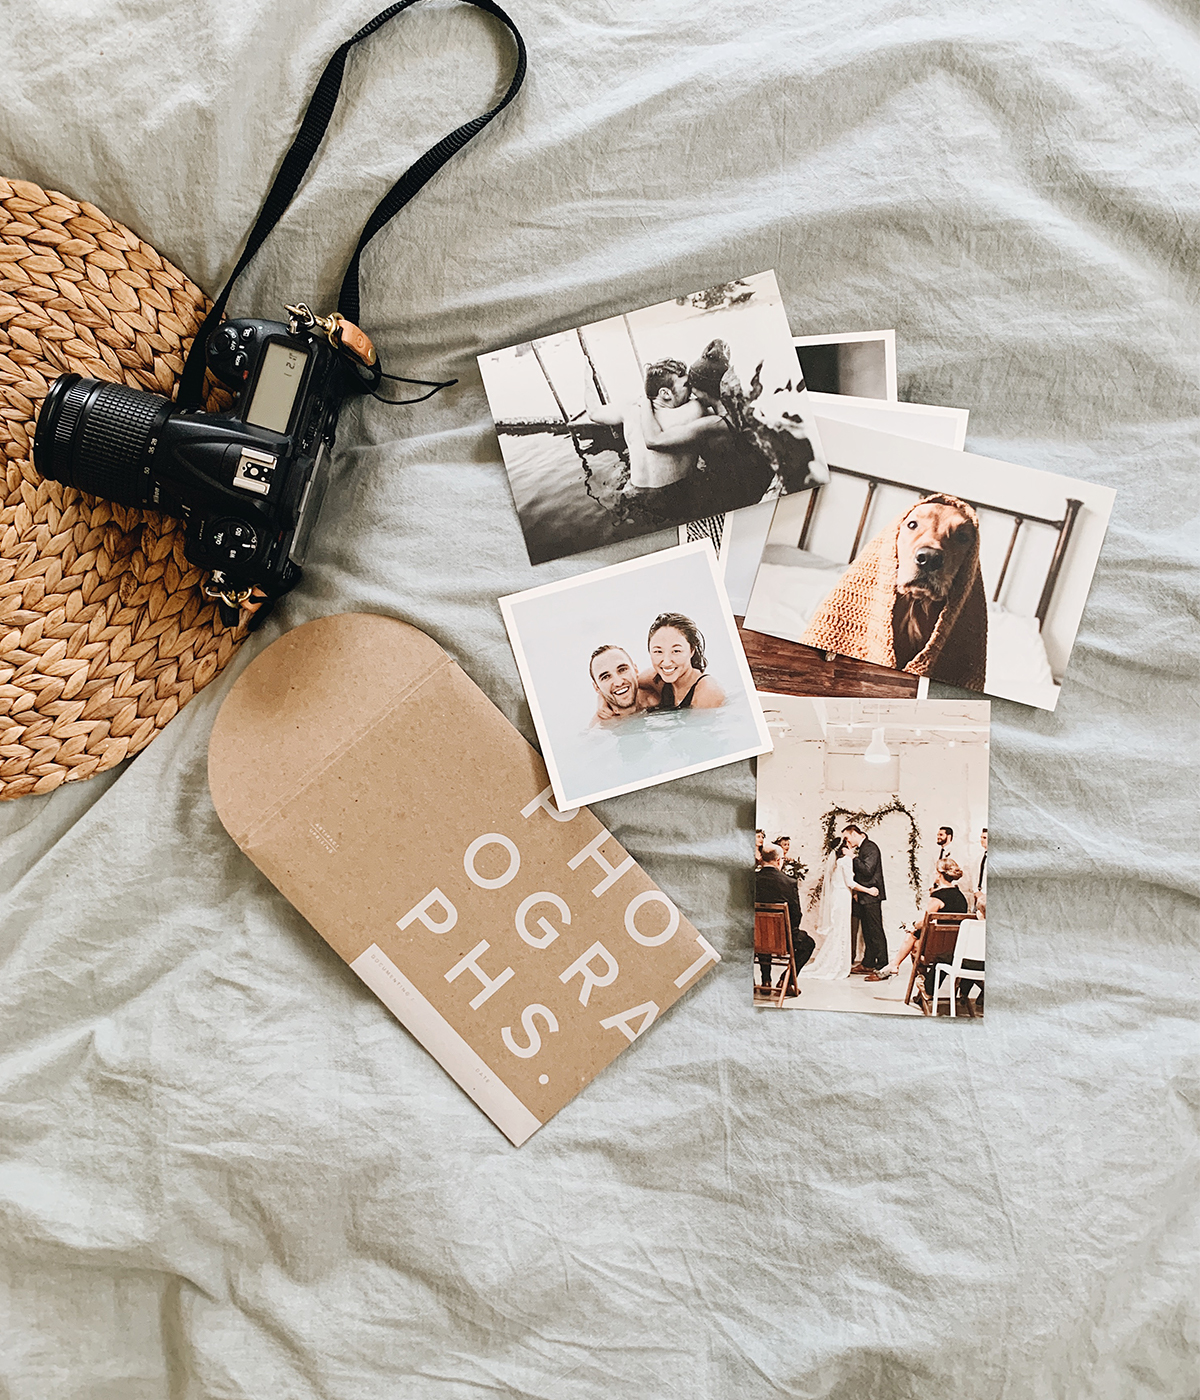 Photo prints on bed next to camera and hat